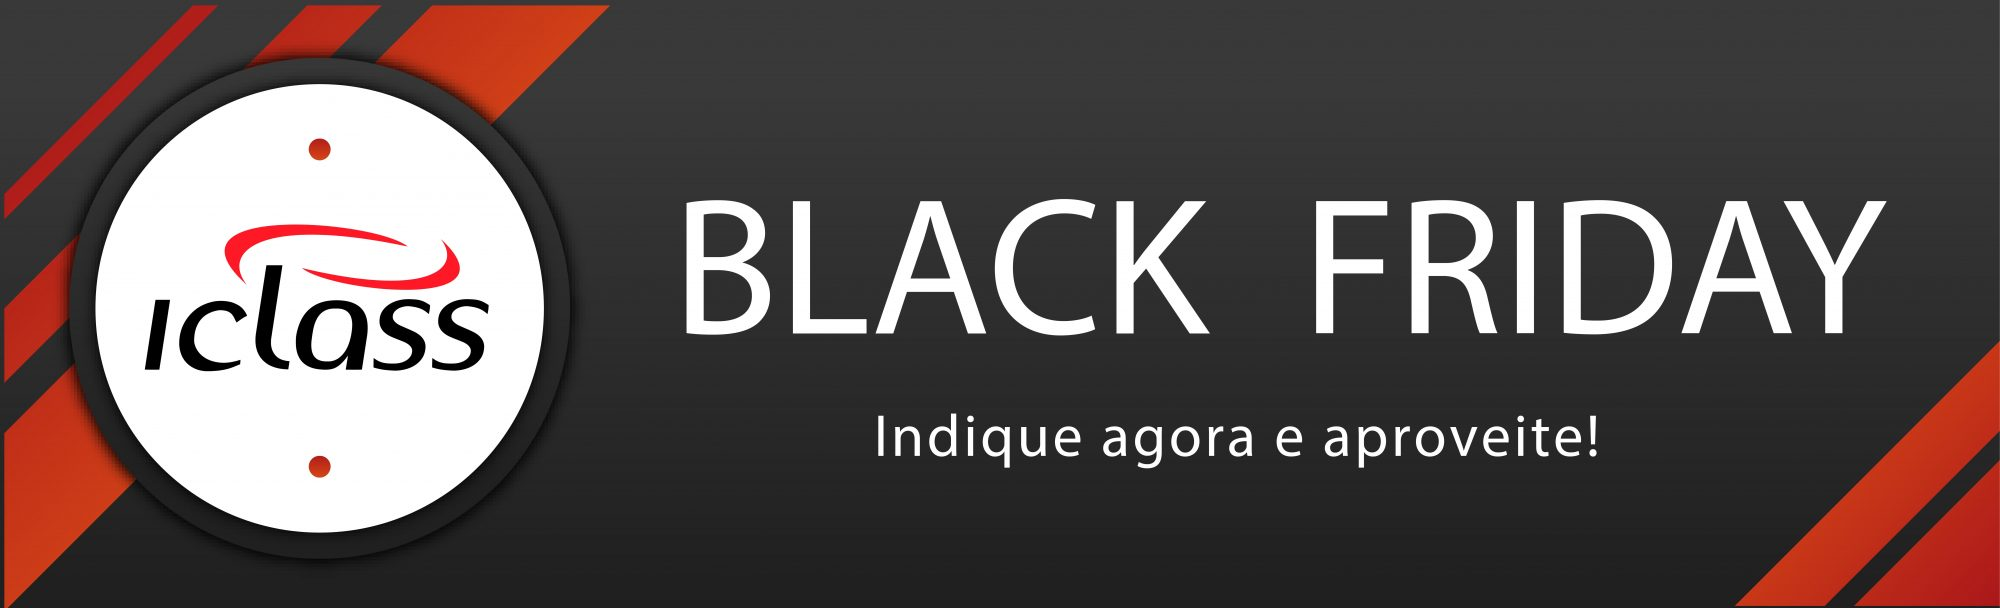 Black Friday 2018 06 min Black Friday 2018 06 min